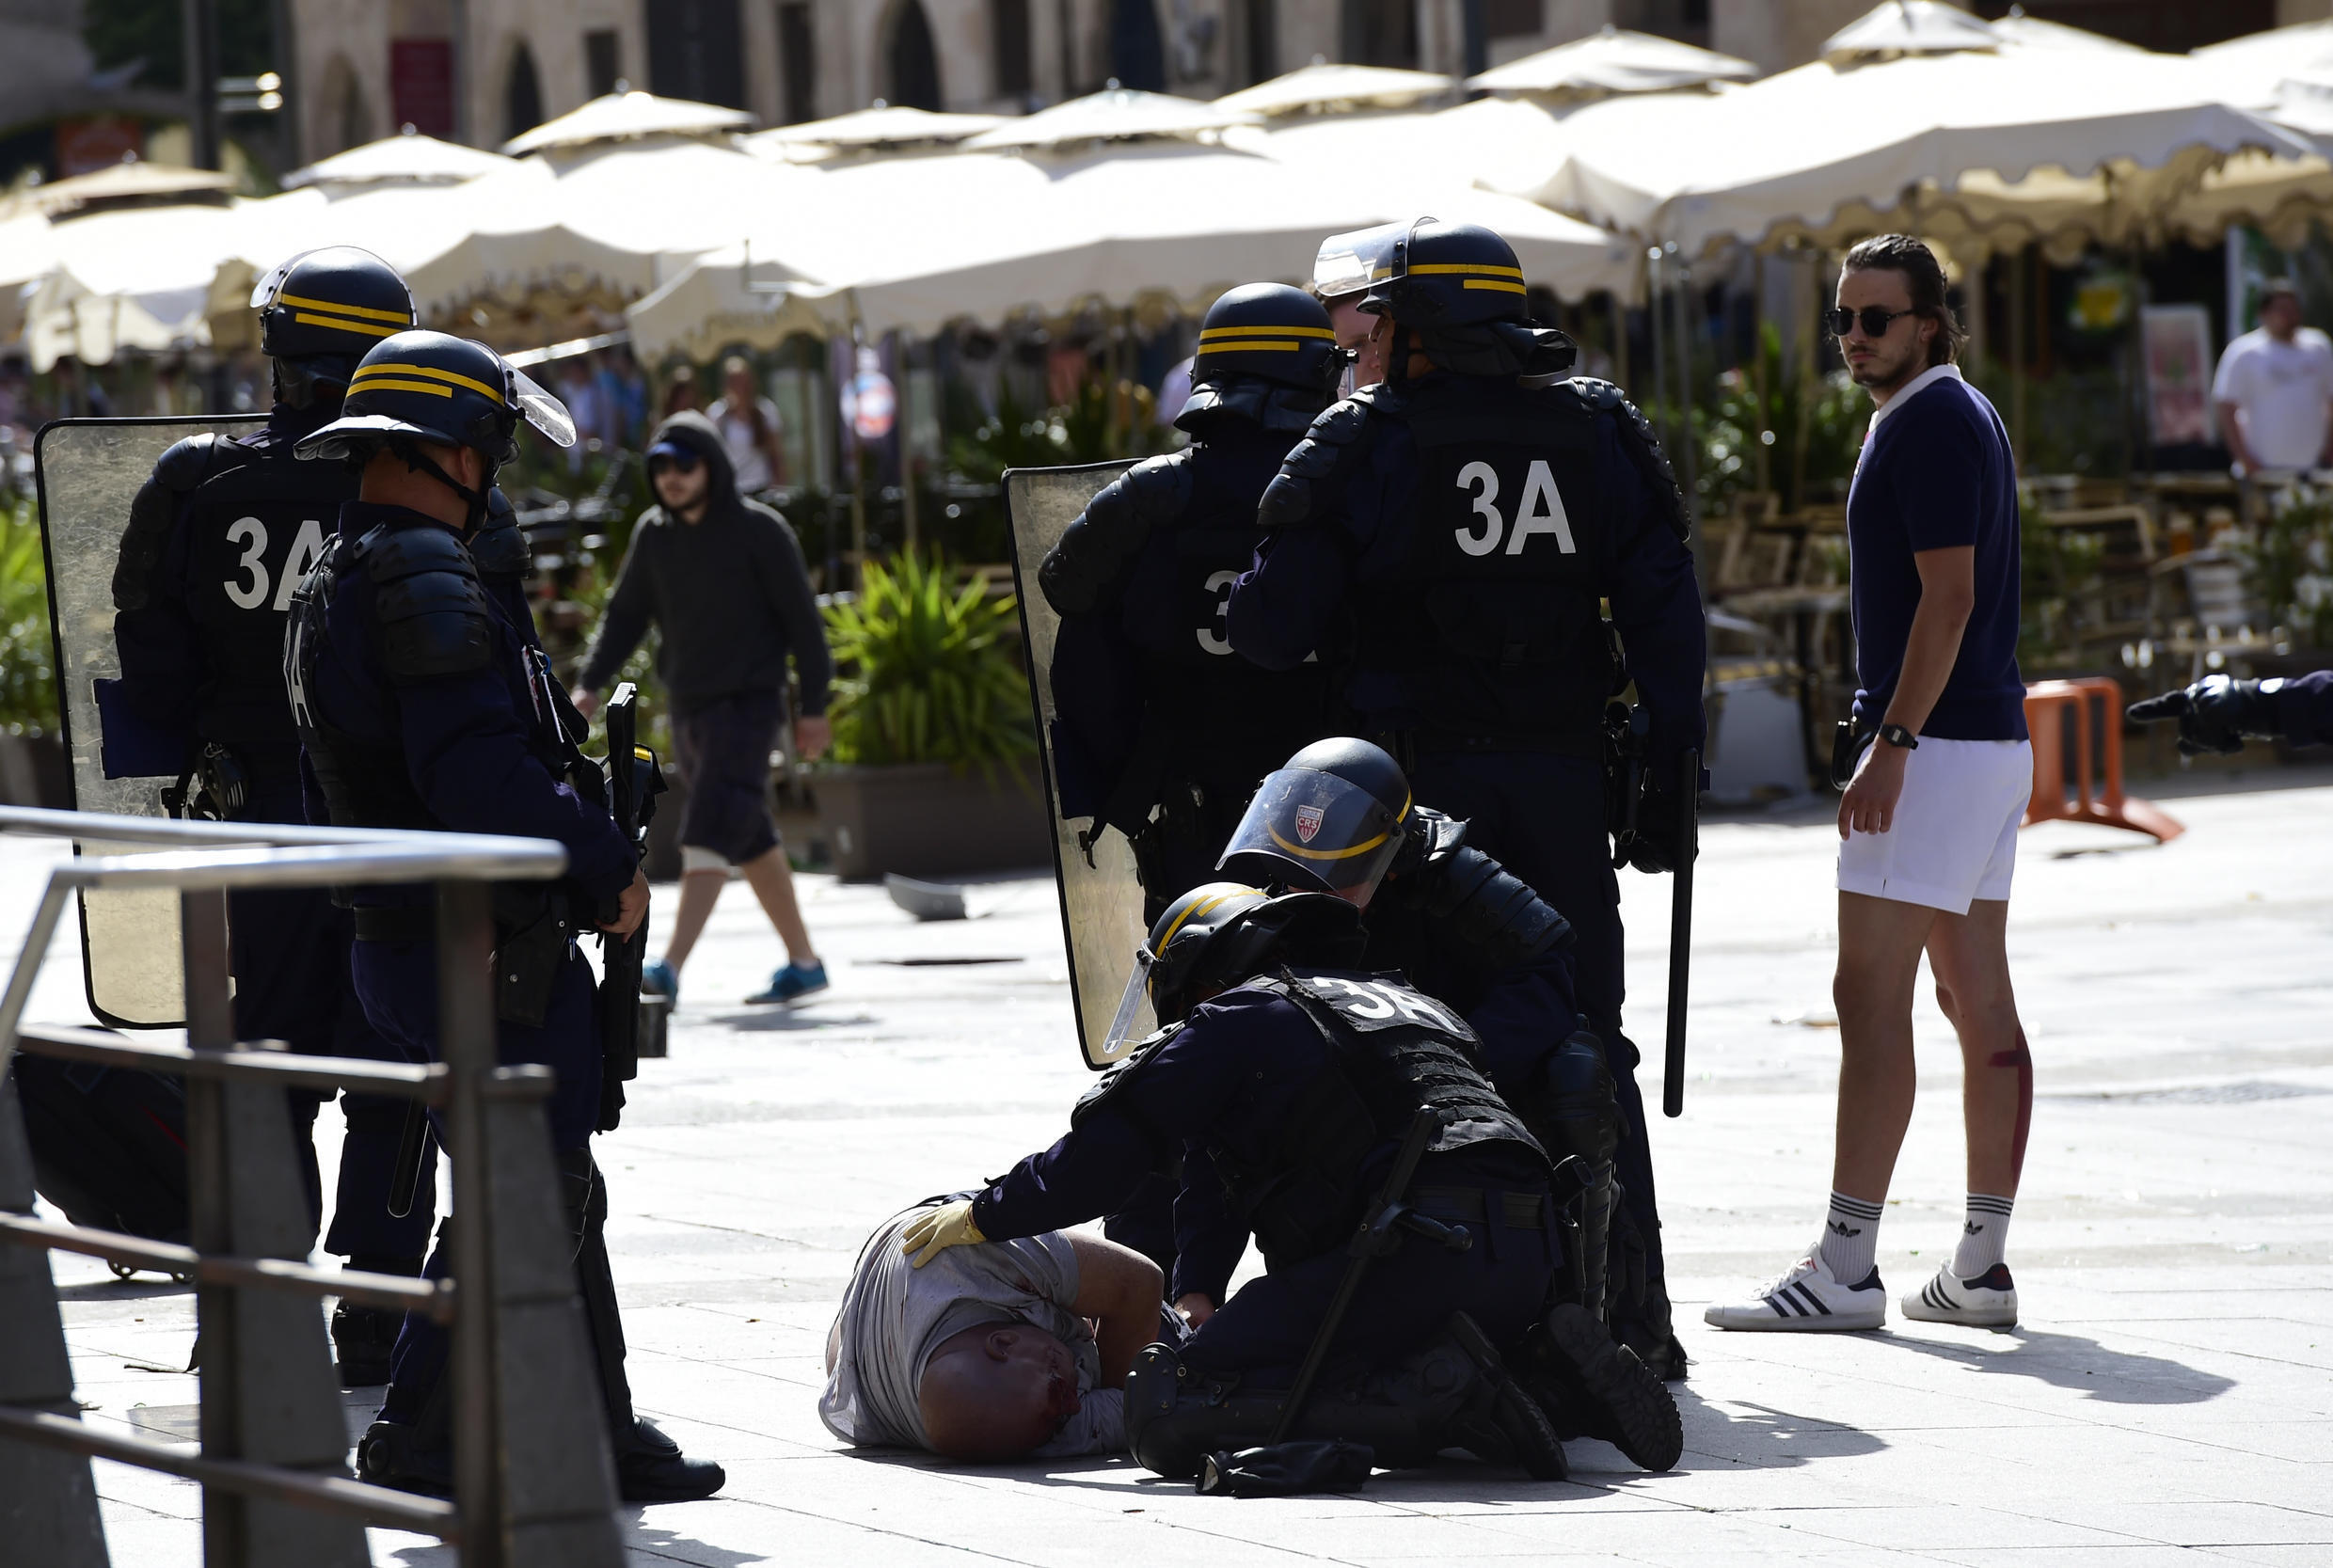 Police attend to injured England fan Andrew Bache following clashes with Russian fans in Marseille ahead of the Euro 2016 football match between England and Russia